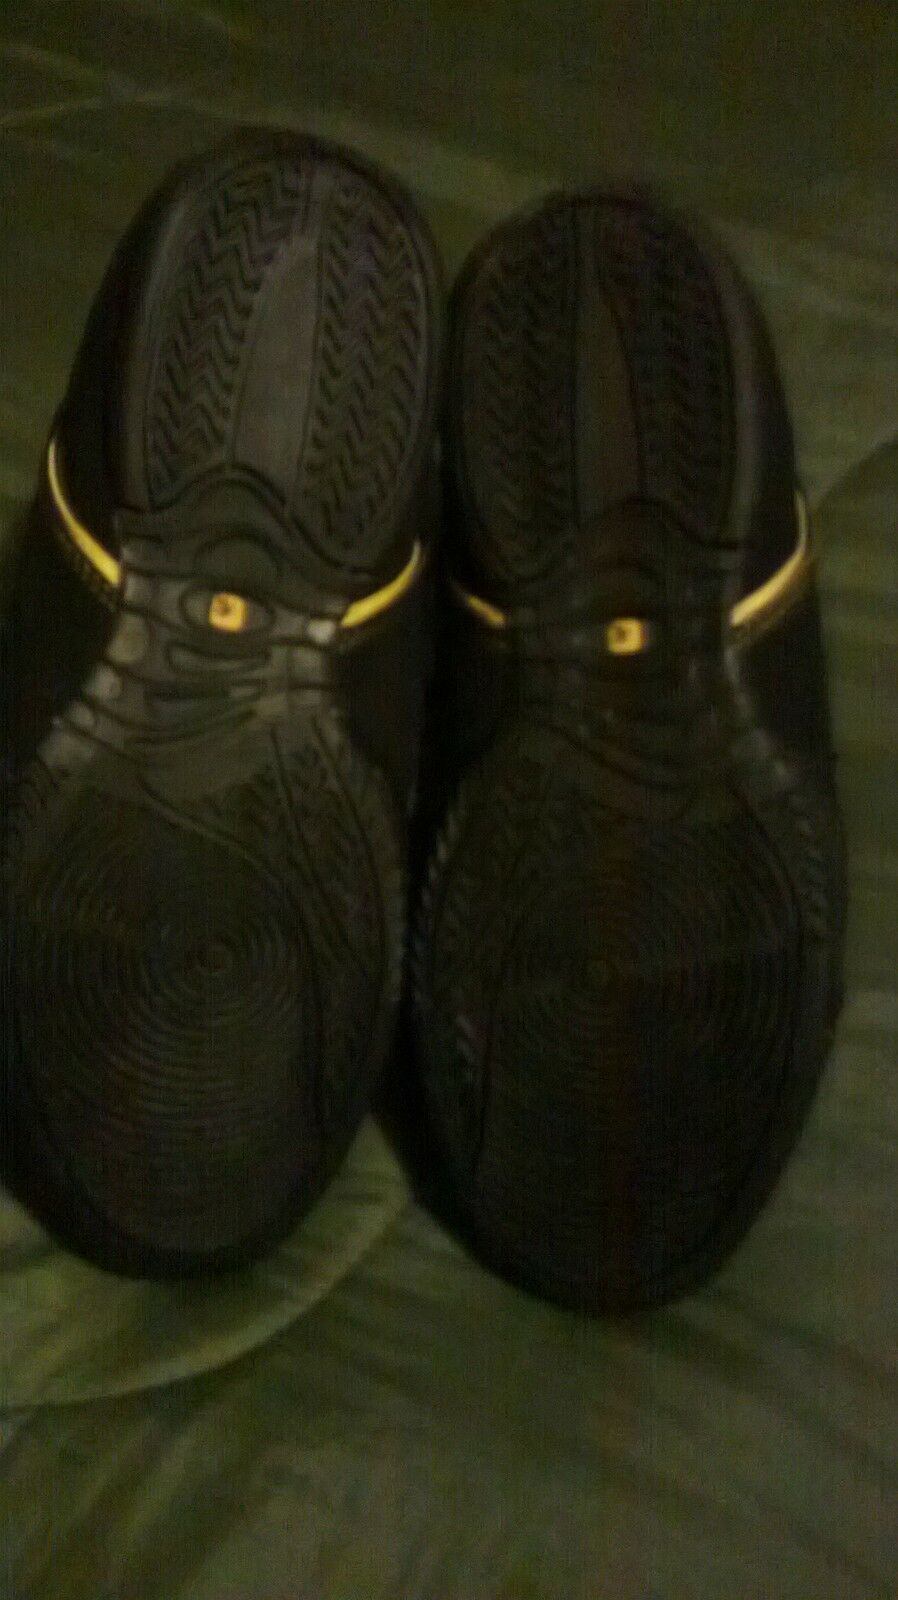 AND1 AND1 AND1 basketball boots size uk 7 new no box black/yellow unwanted gift 86bf0e